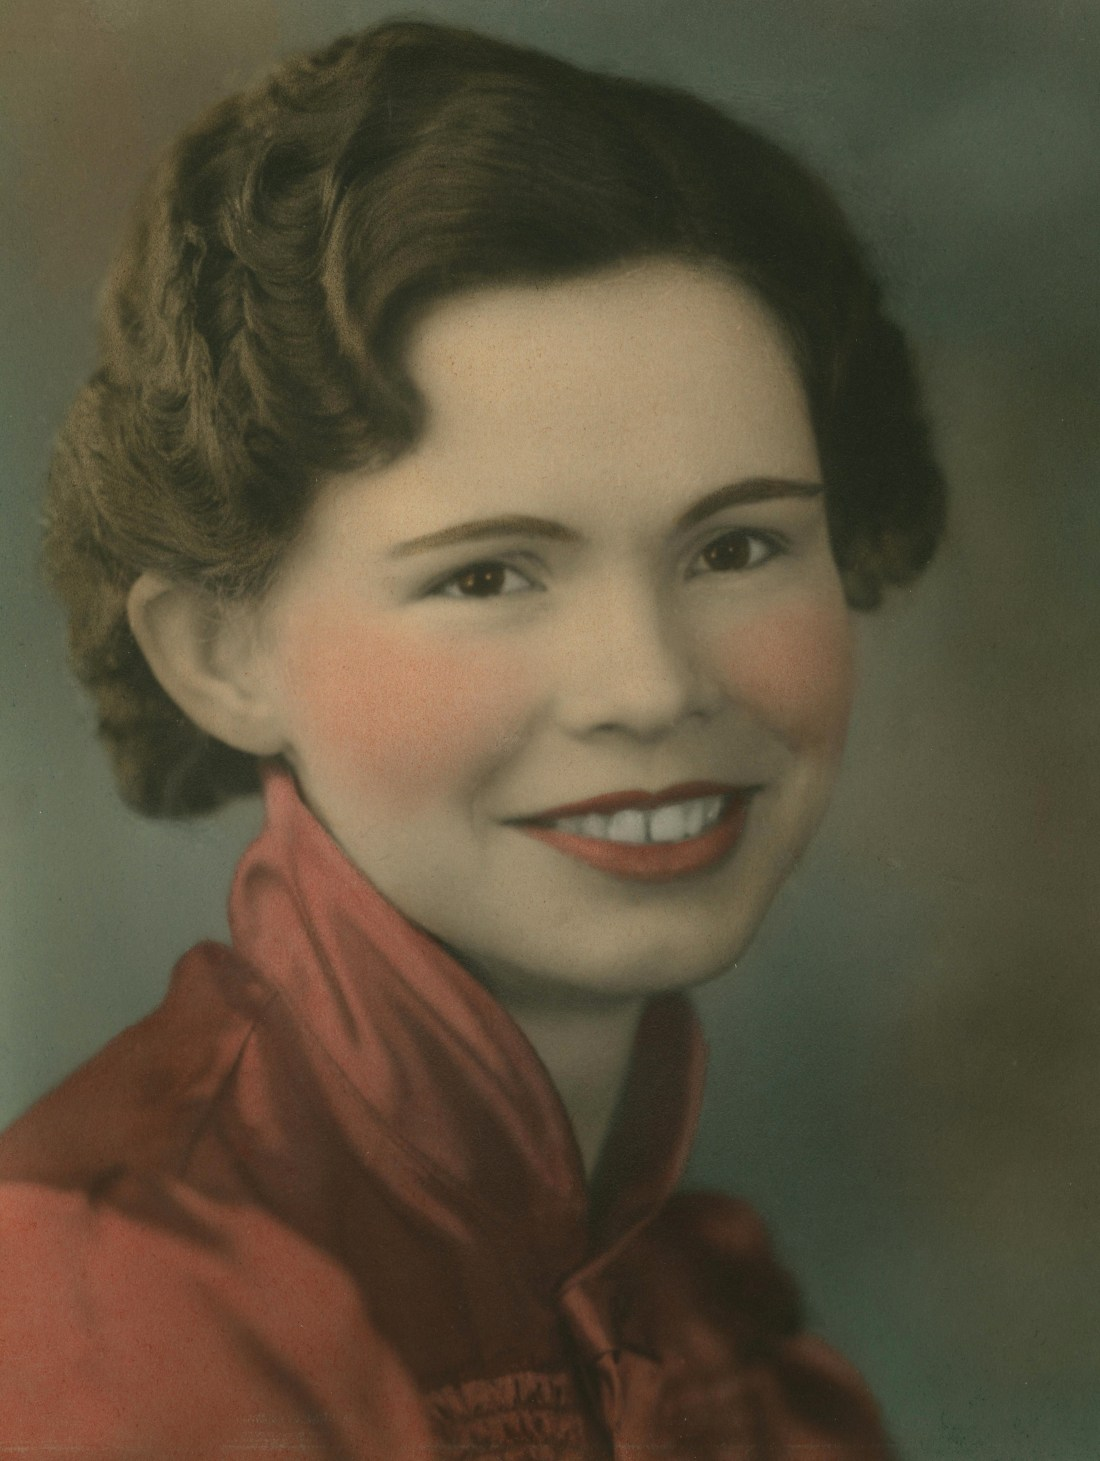 #24.1 May 1937 Clarice Sletten H.S. Graduation